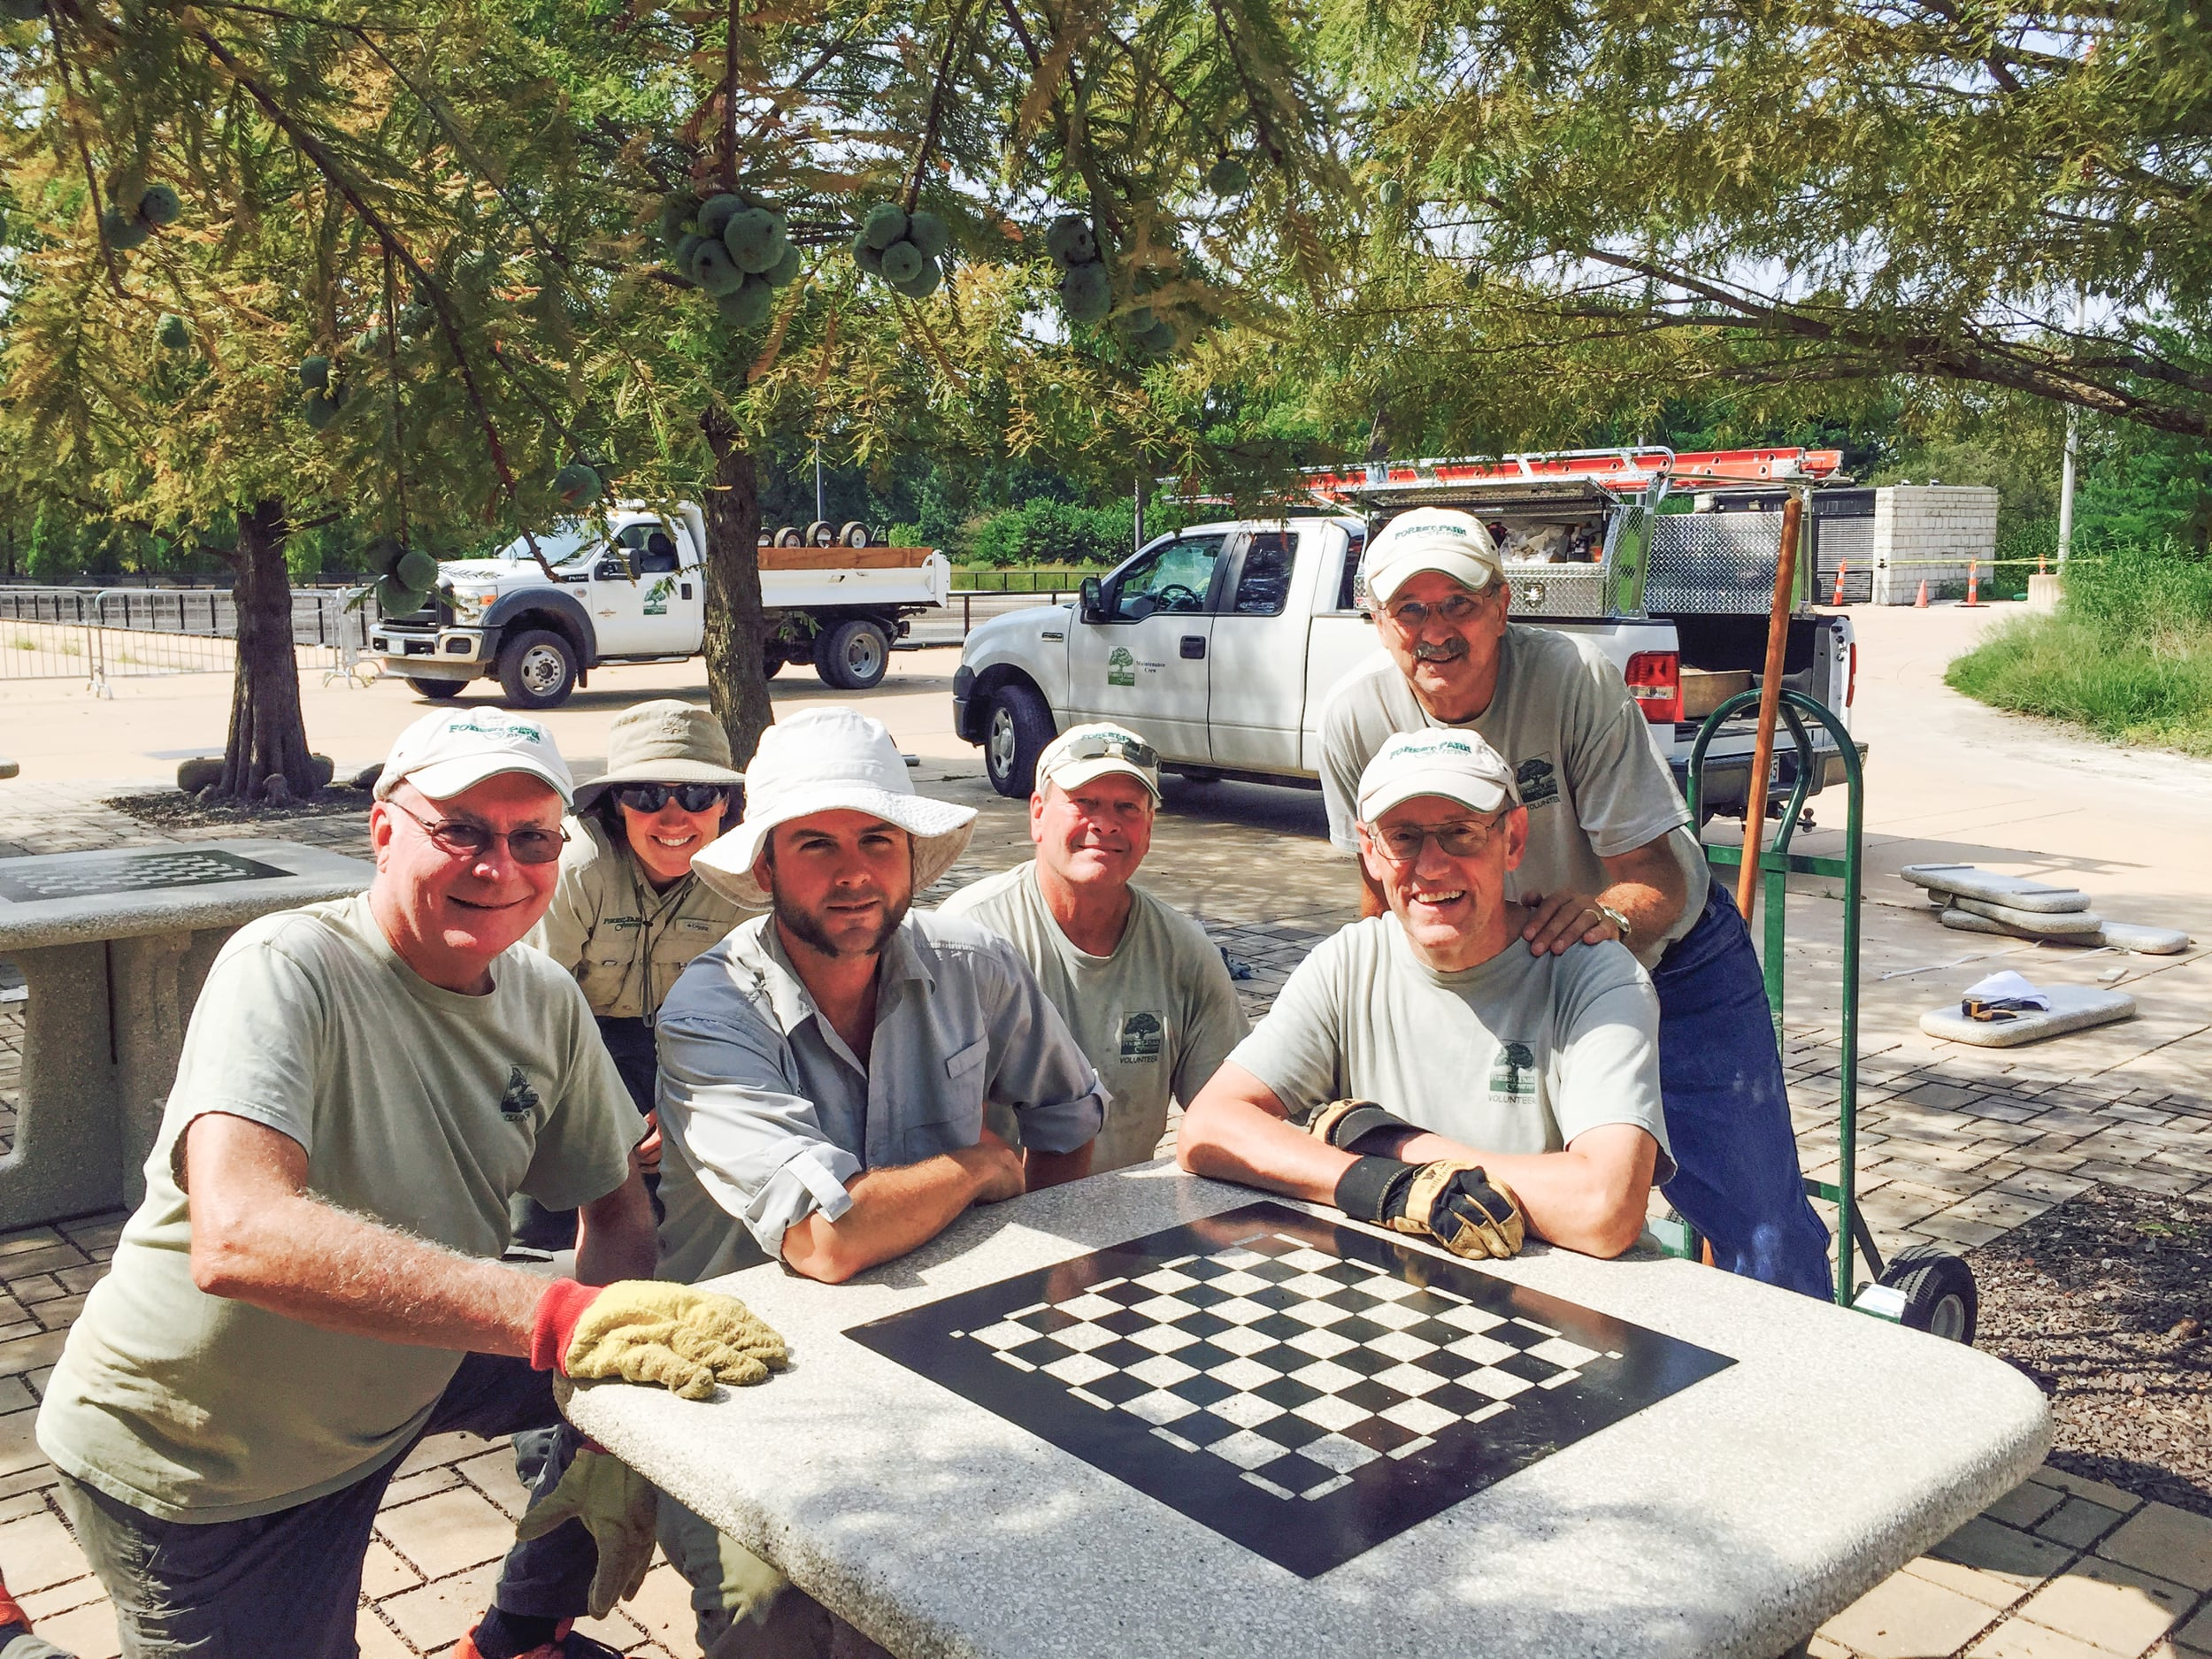 Helping install tables at the new chess plaza